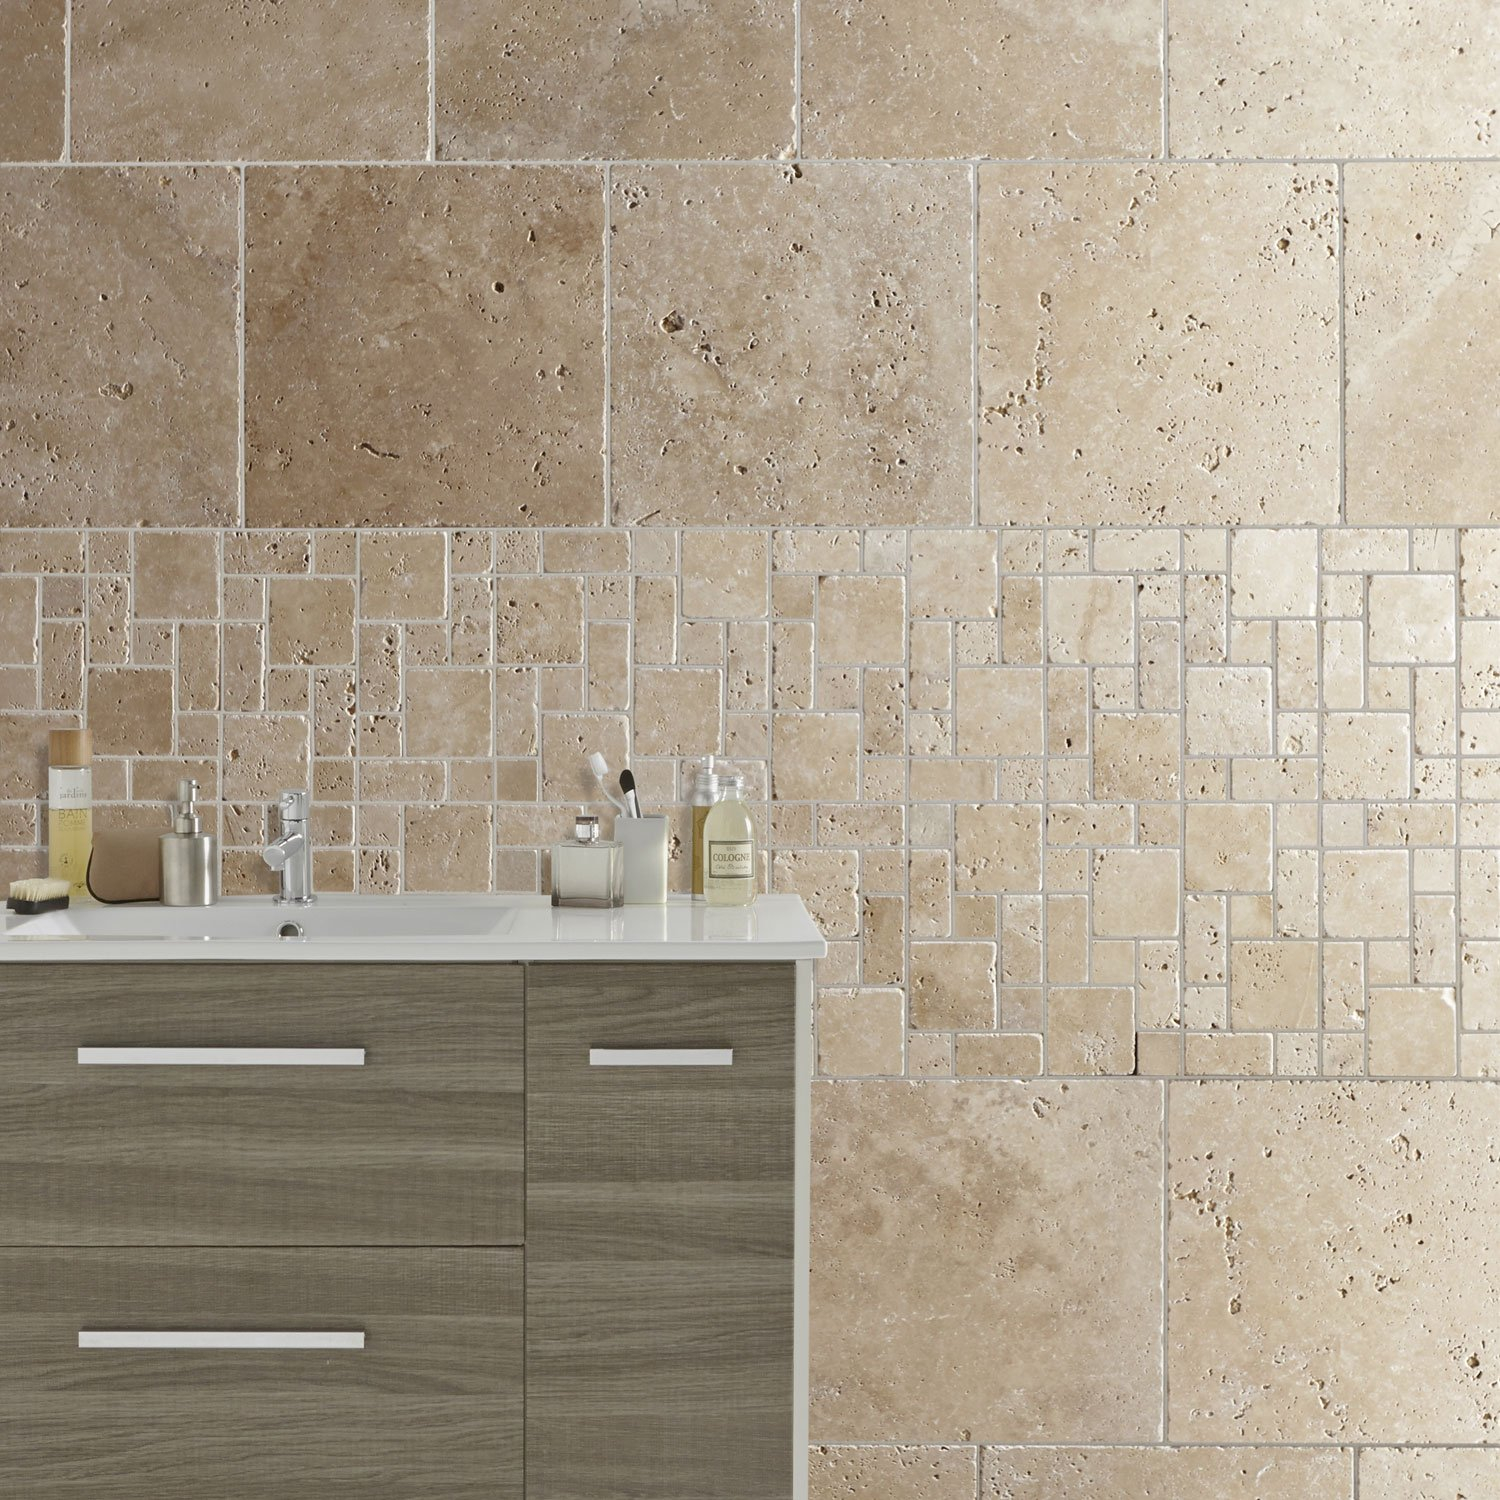 Travertin sol et mur beige effet pierre Travertin l 40 6 x